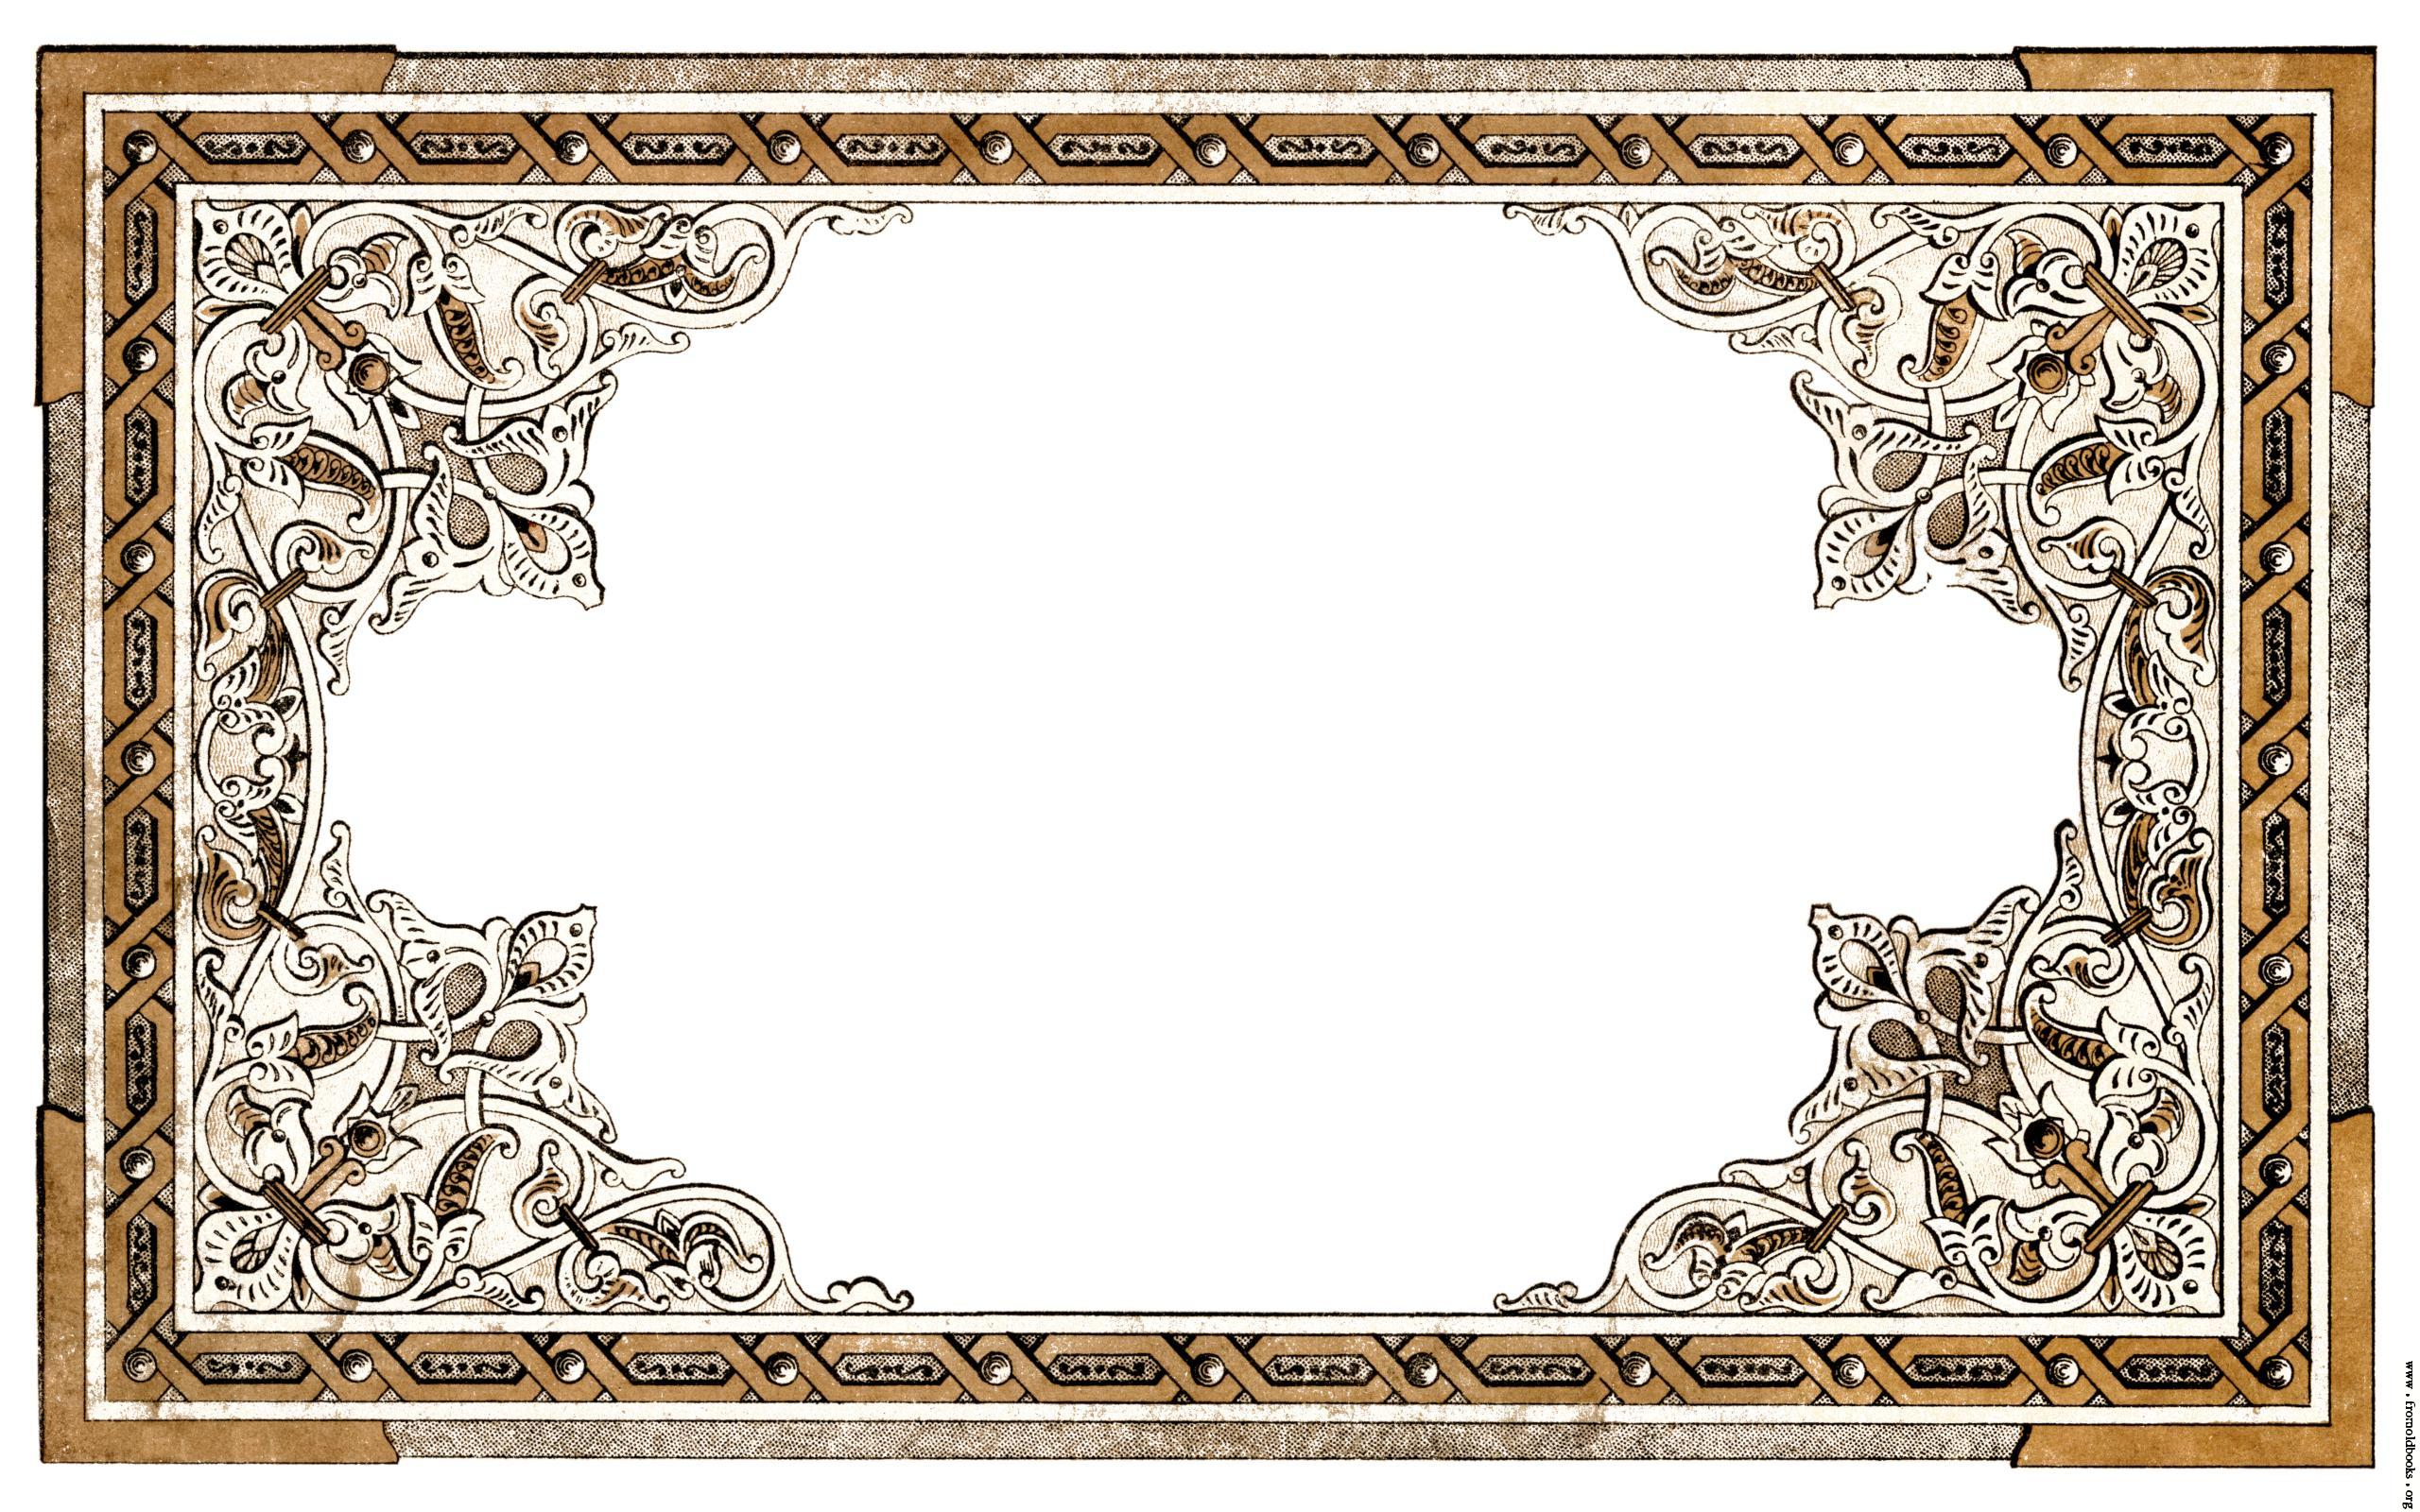 Vintage Shabby Chic Ornate Full Page Border Details